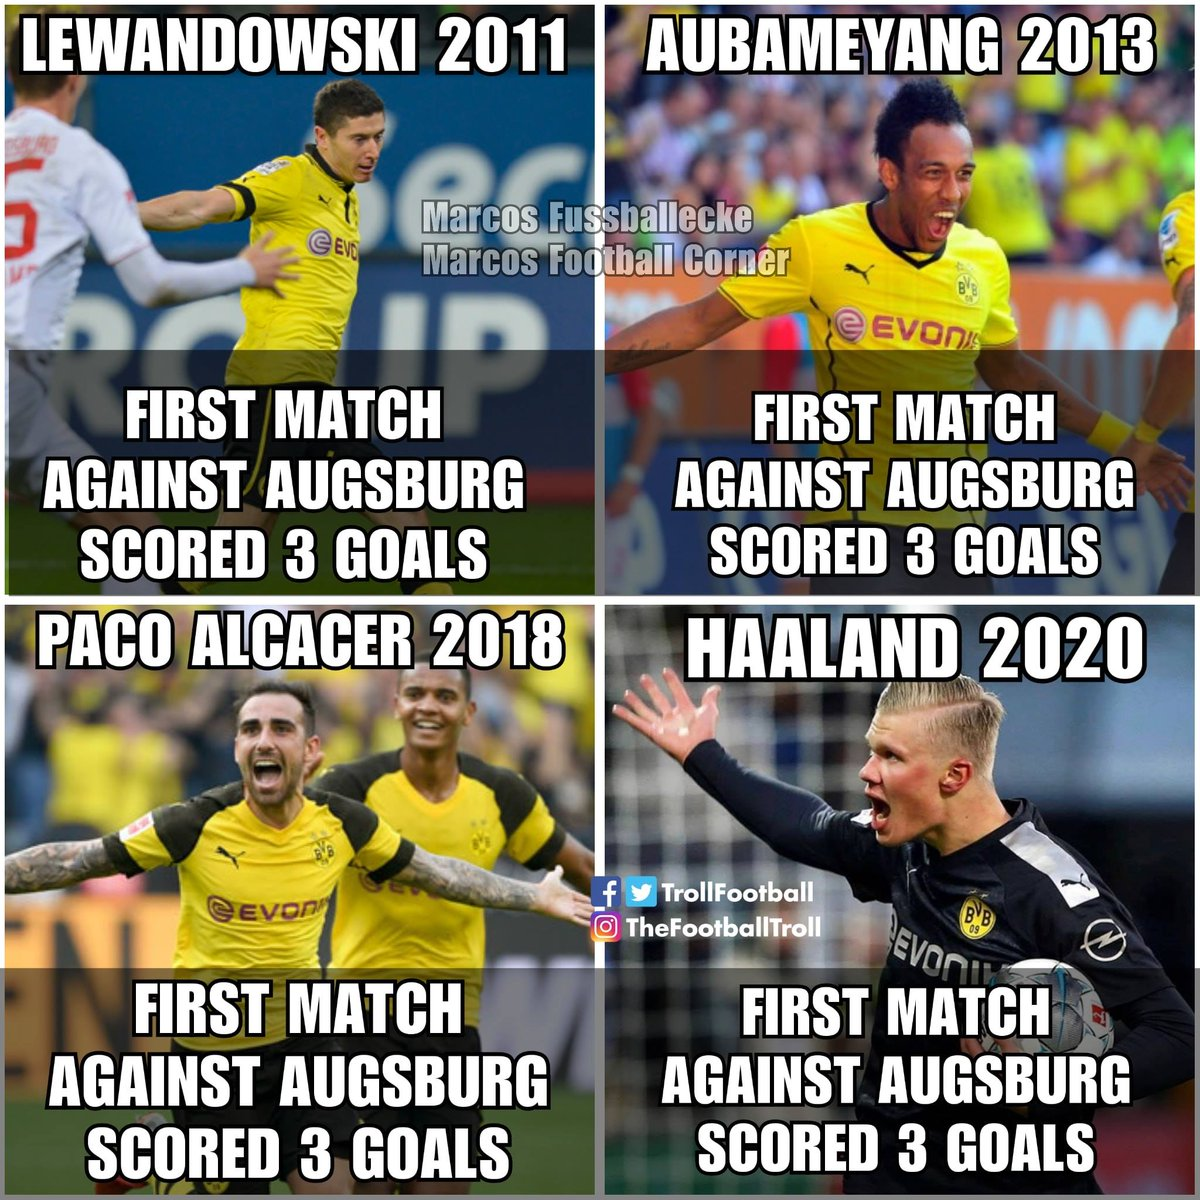 Replying to @TrollFootball: Augsburg: Am I a joke to you?